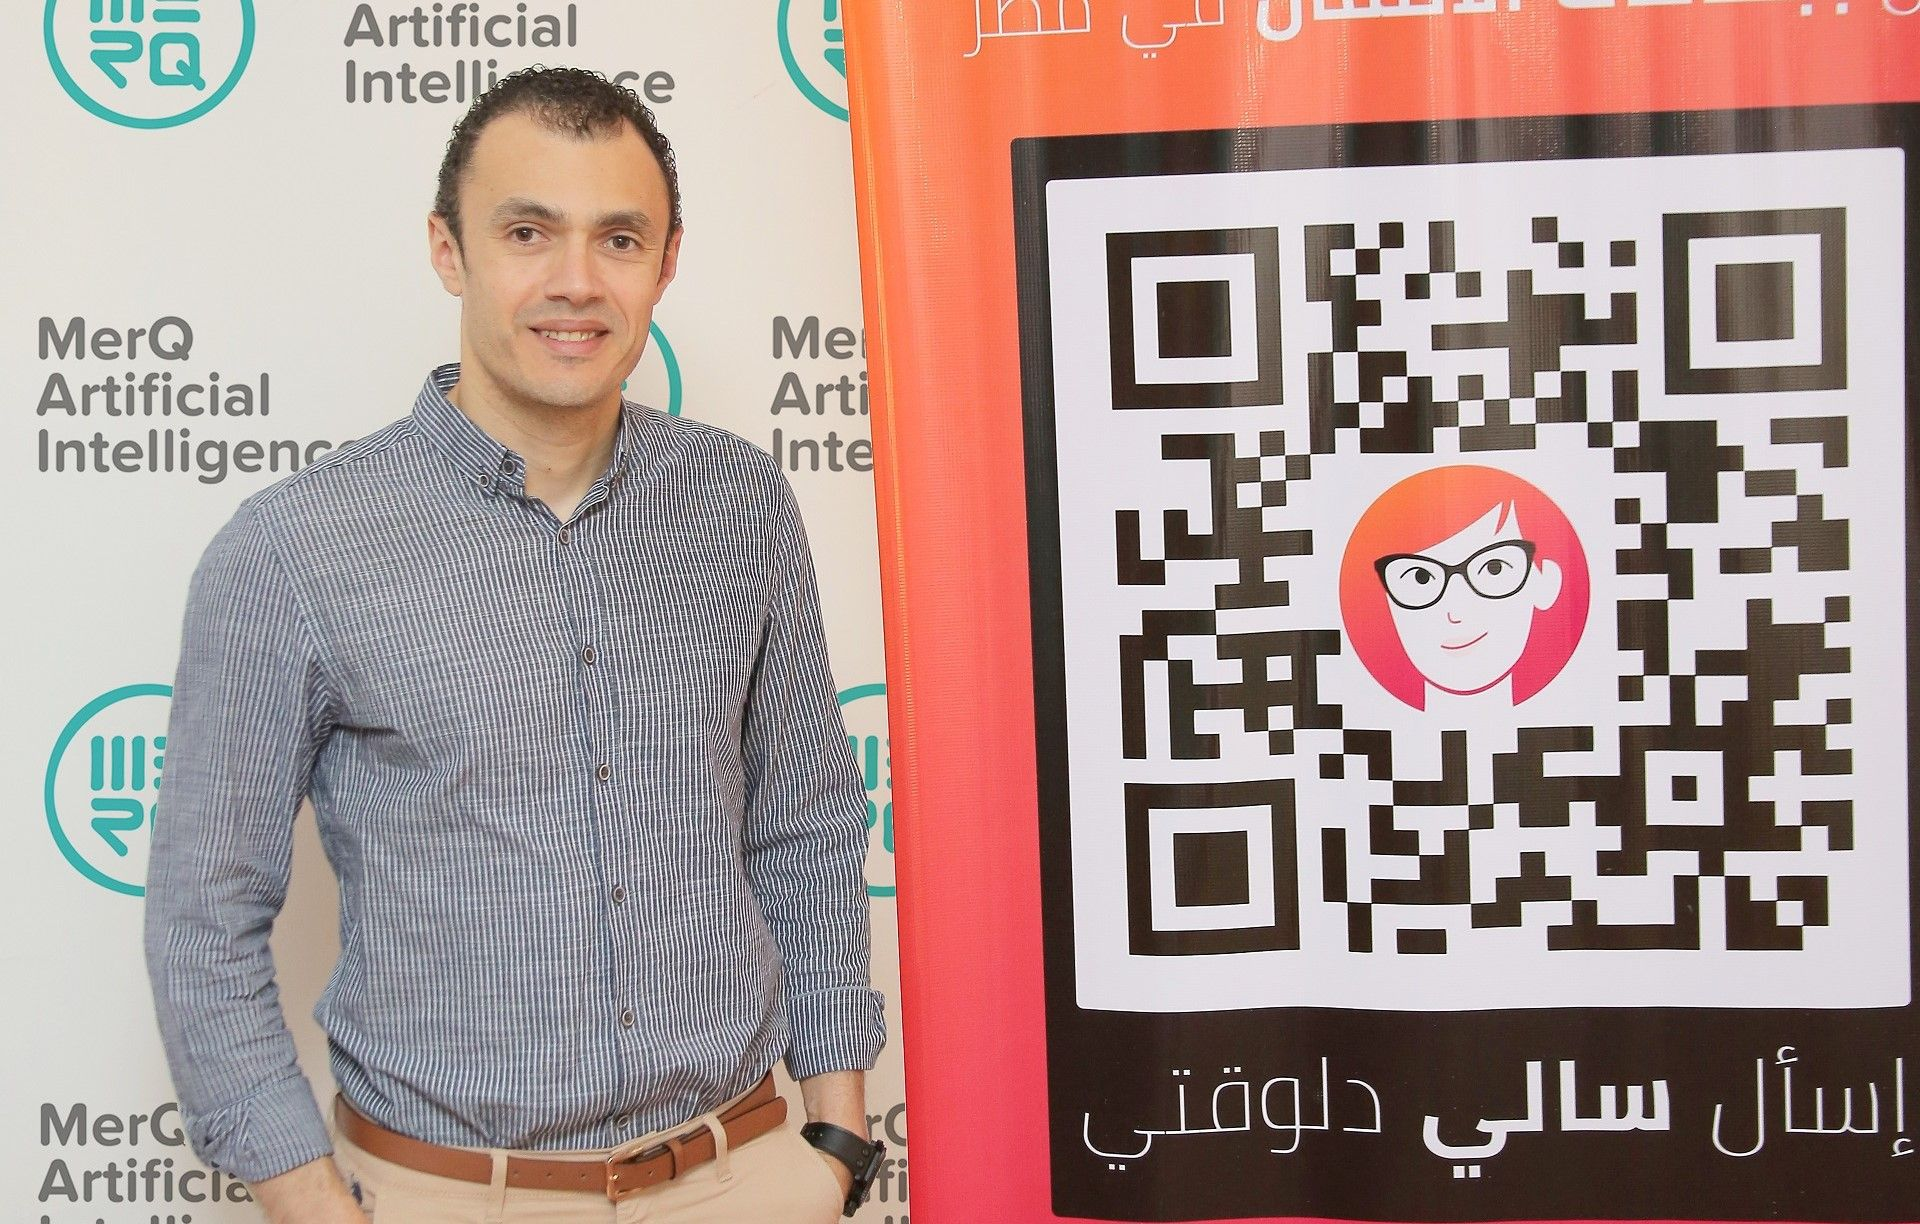 MerQ closes its seed funding round